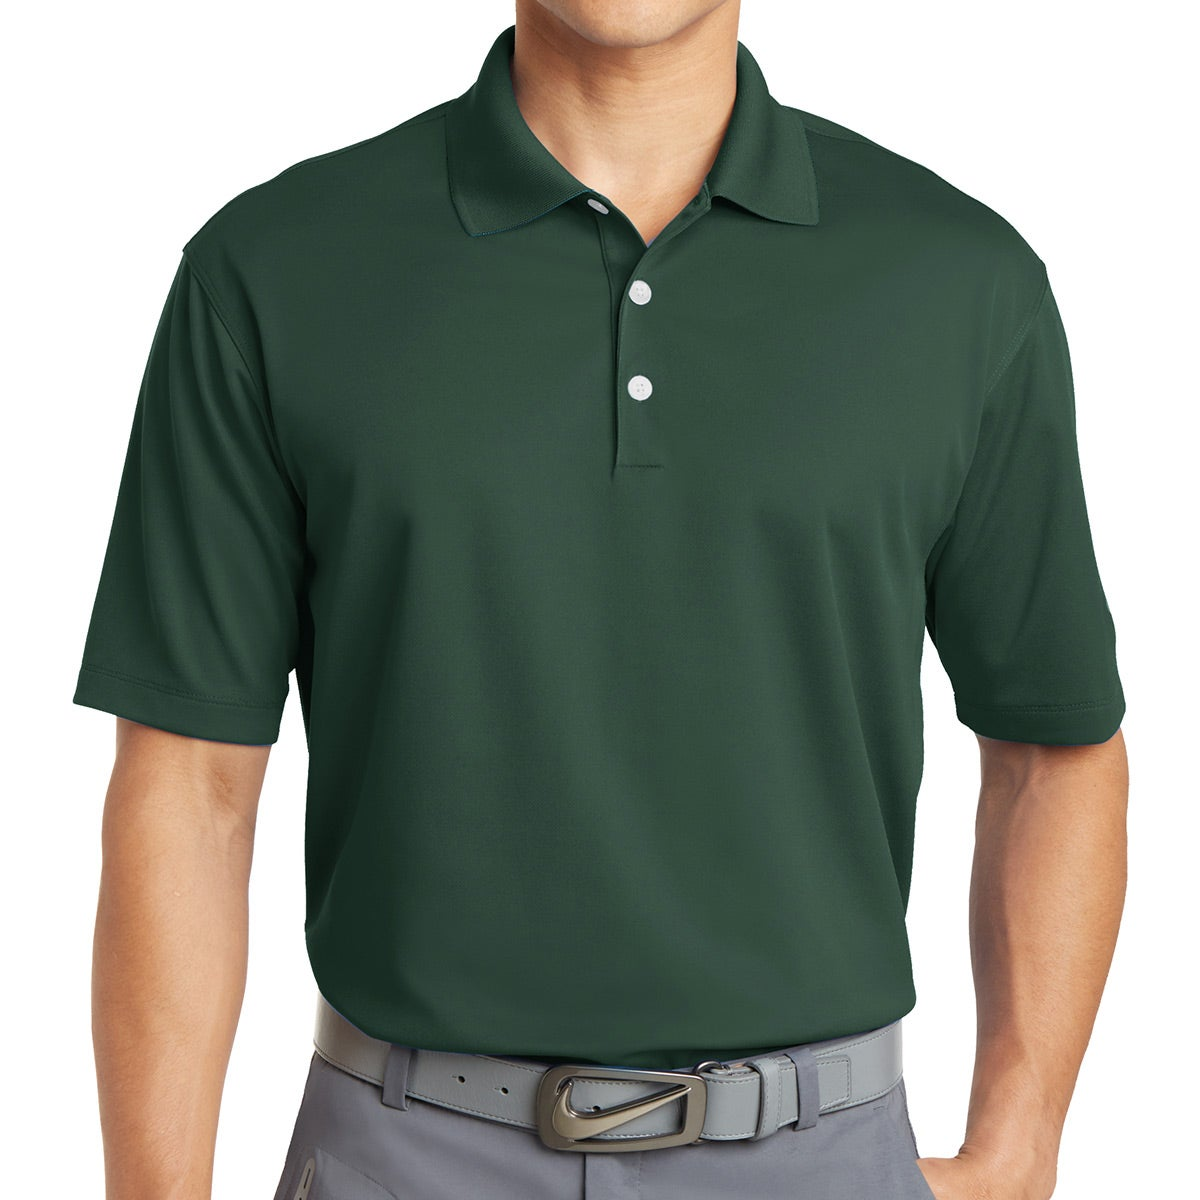 Promotional Colors Nike Golf Dri Fit Micro Pique Polo Shirts With